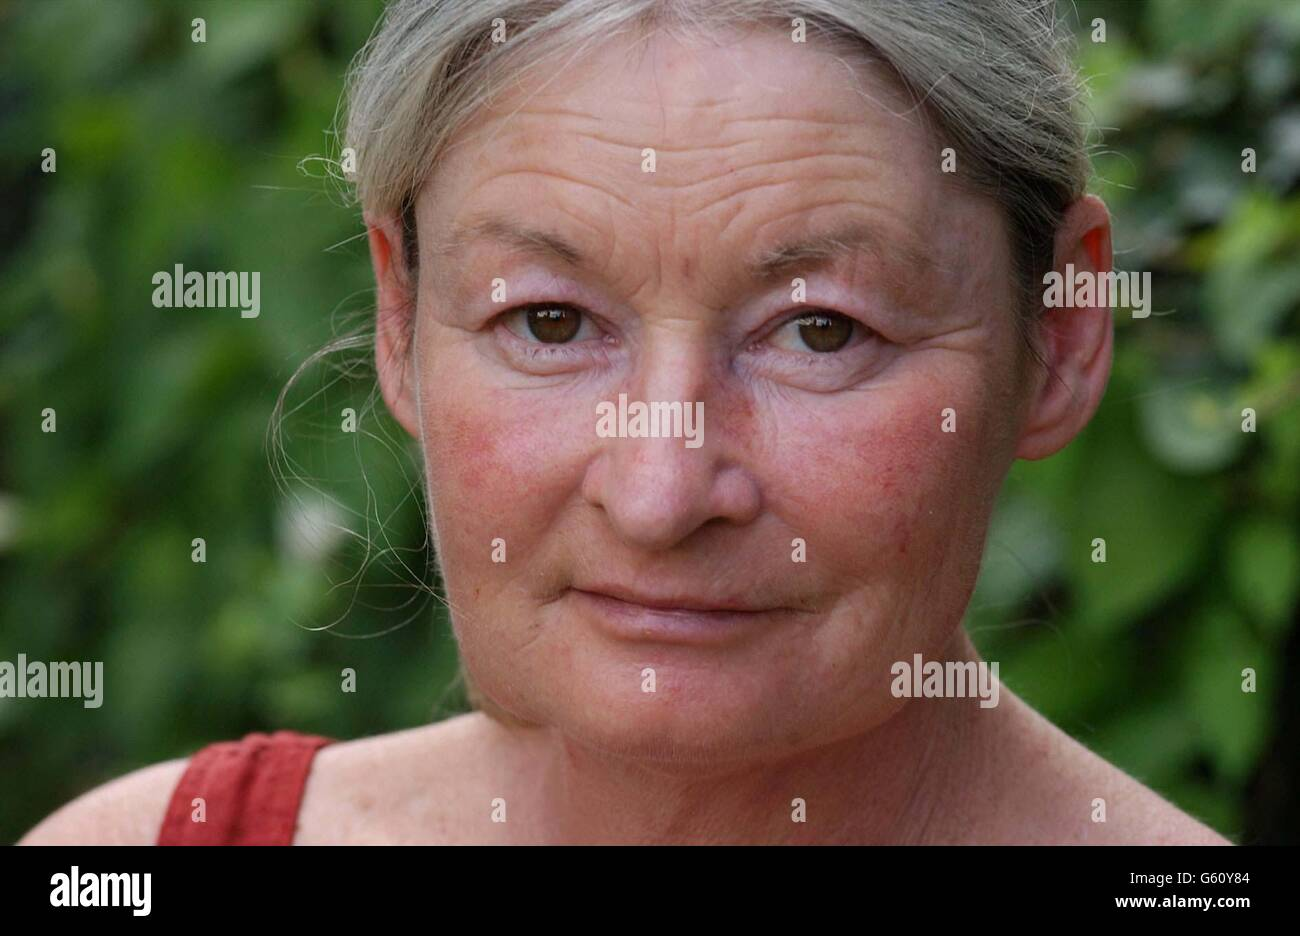 Amnesia Patient Makes Appeal Stock Photo